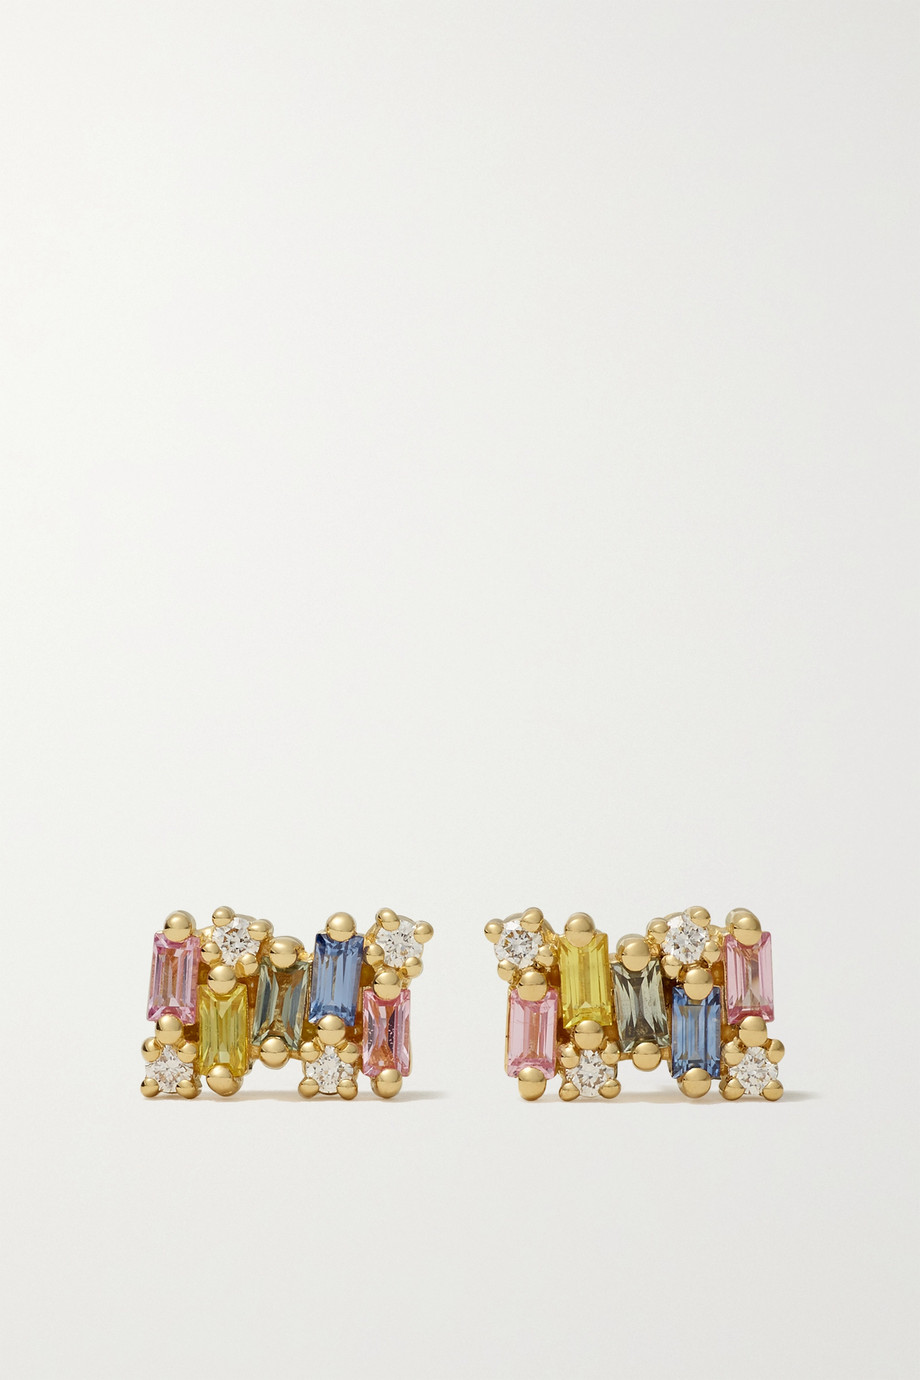 SUZANNE KALAN 18-karat gold sapphire, and diamond earrings